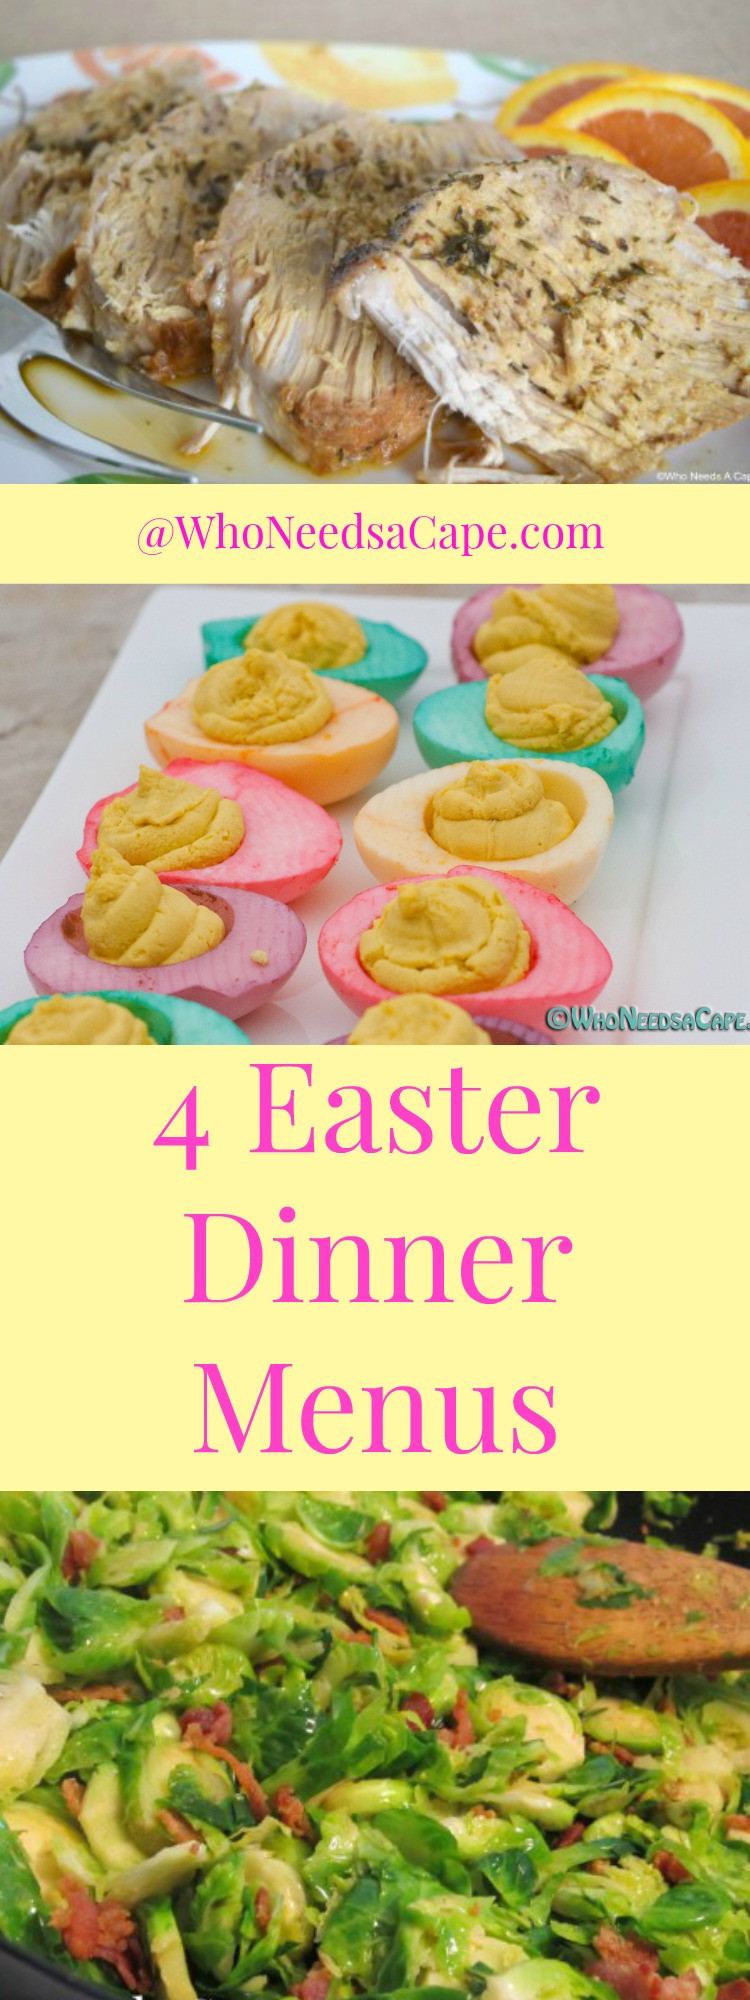 Traditional Easter Dinner Menu  Easter Dinner Menus Who Needs A Cape